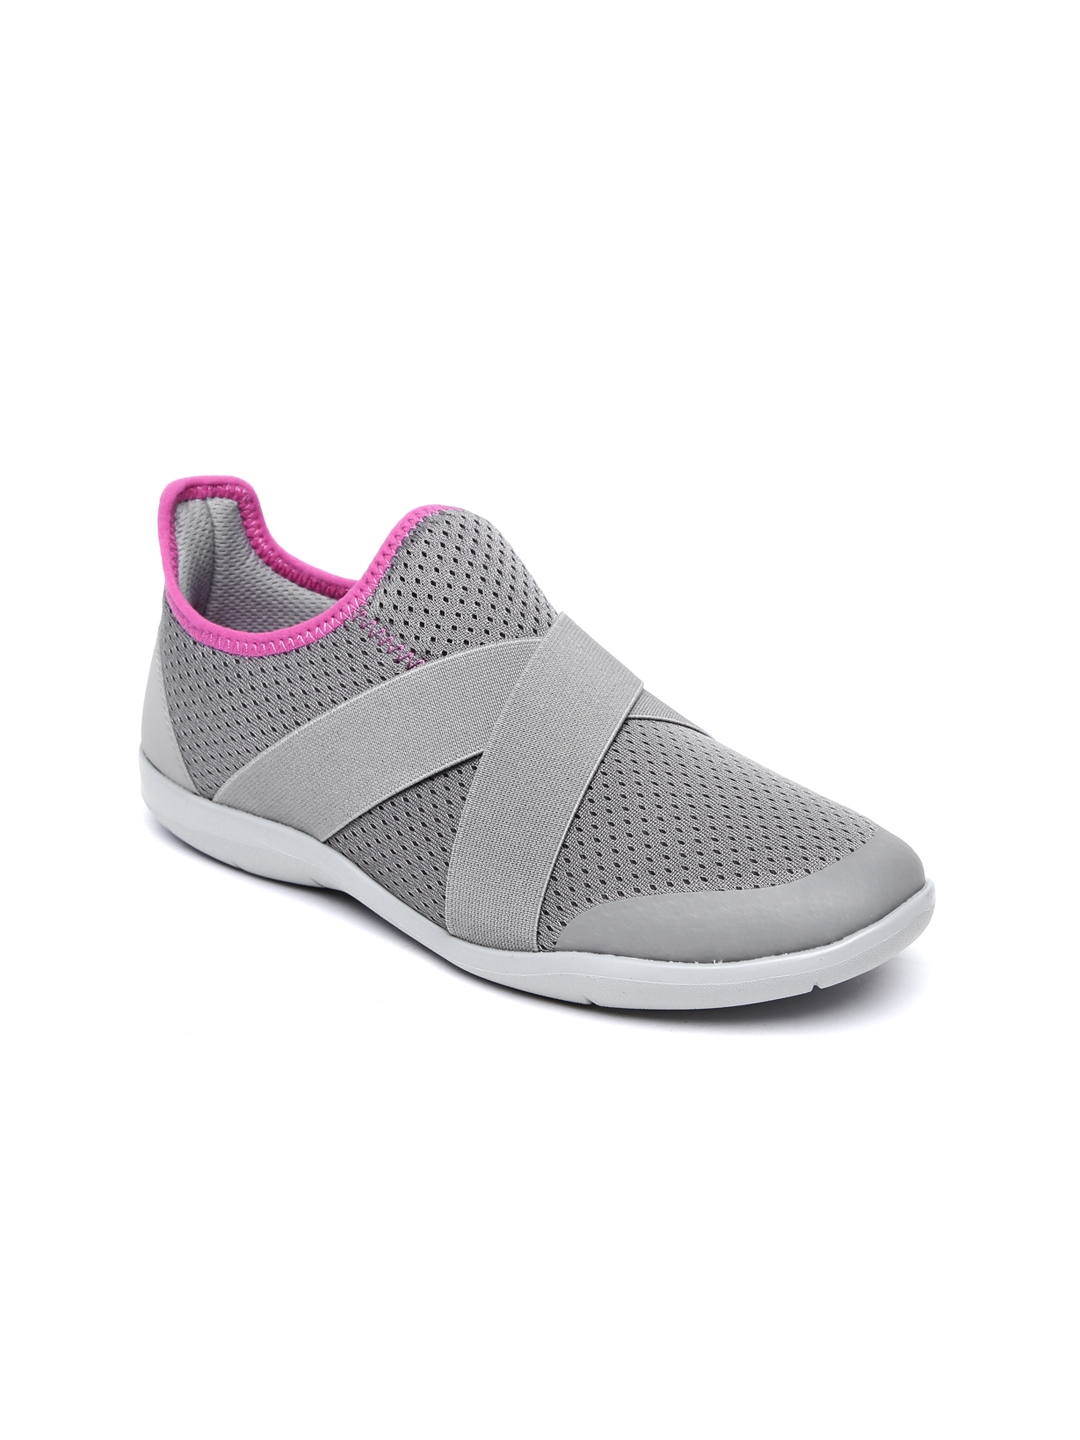 0f07e9b7796bec Buy Crocs Women Grey Solid Slip On Sneakers - Casual Shoes for Women ...